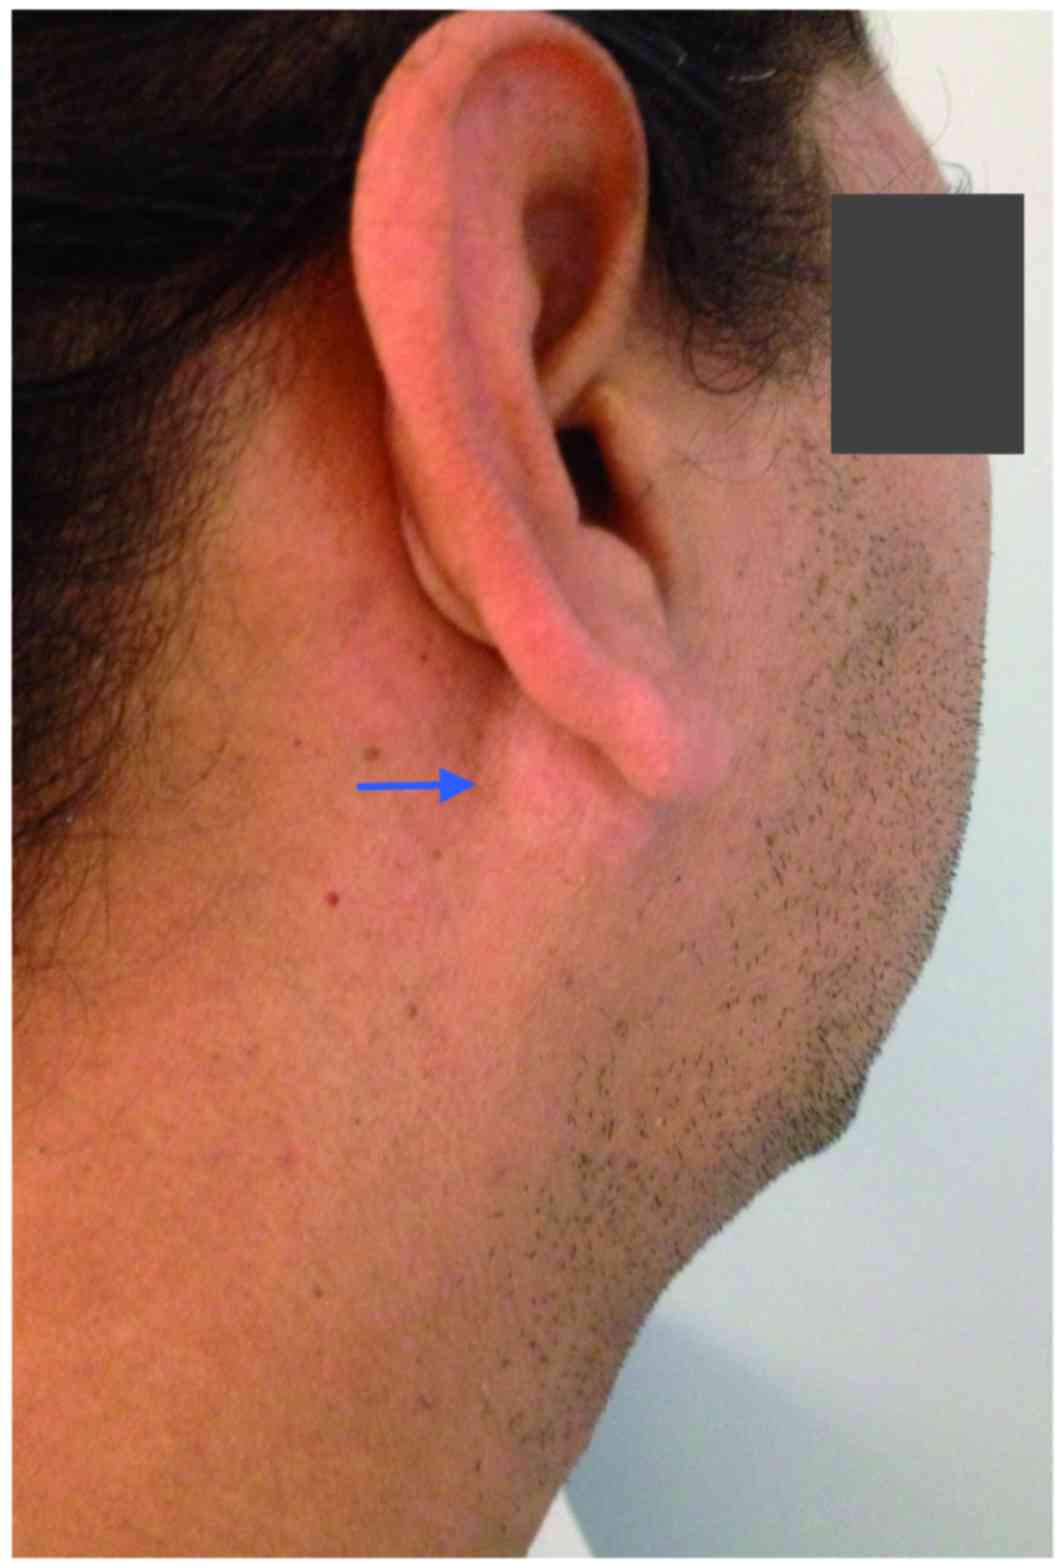 Primary extraosseous plasmacytoma of the parotid gland: A